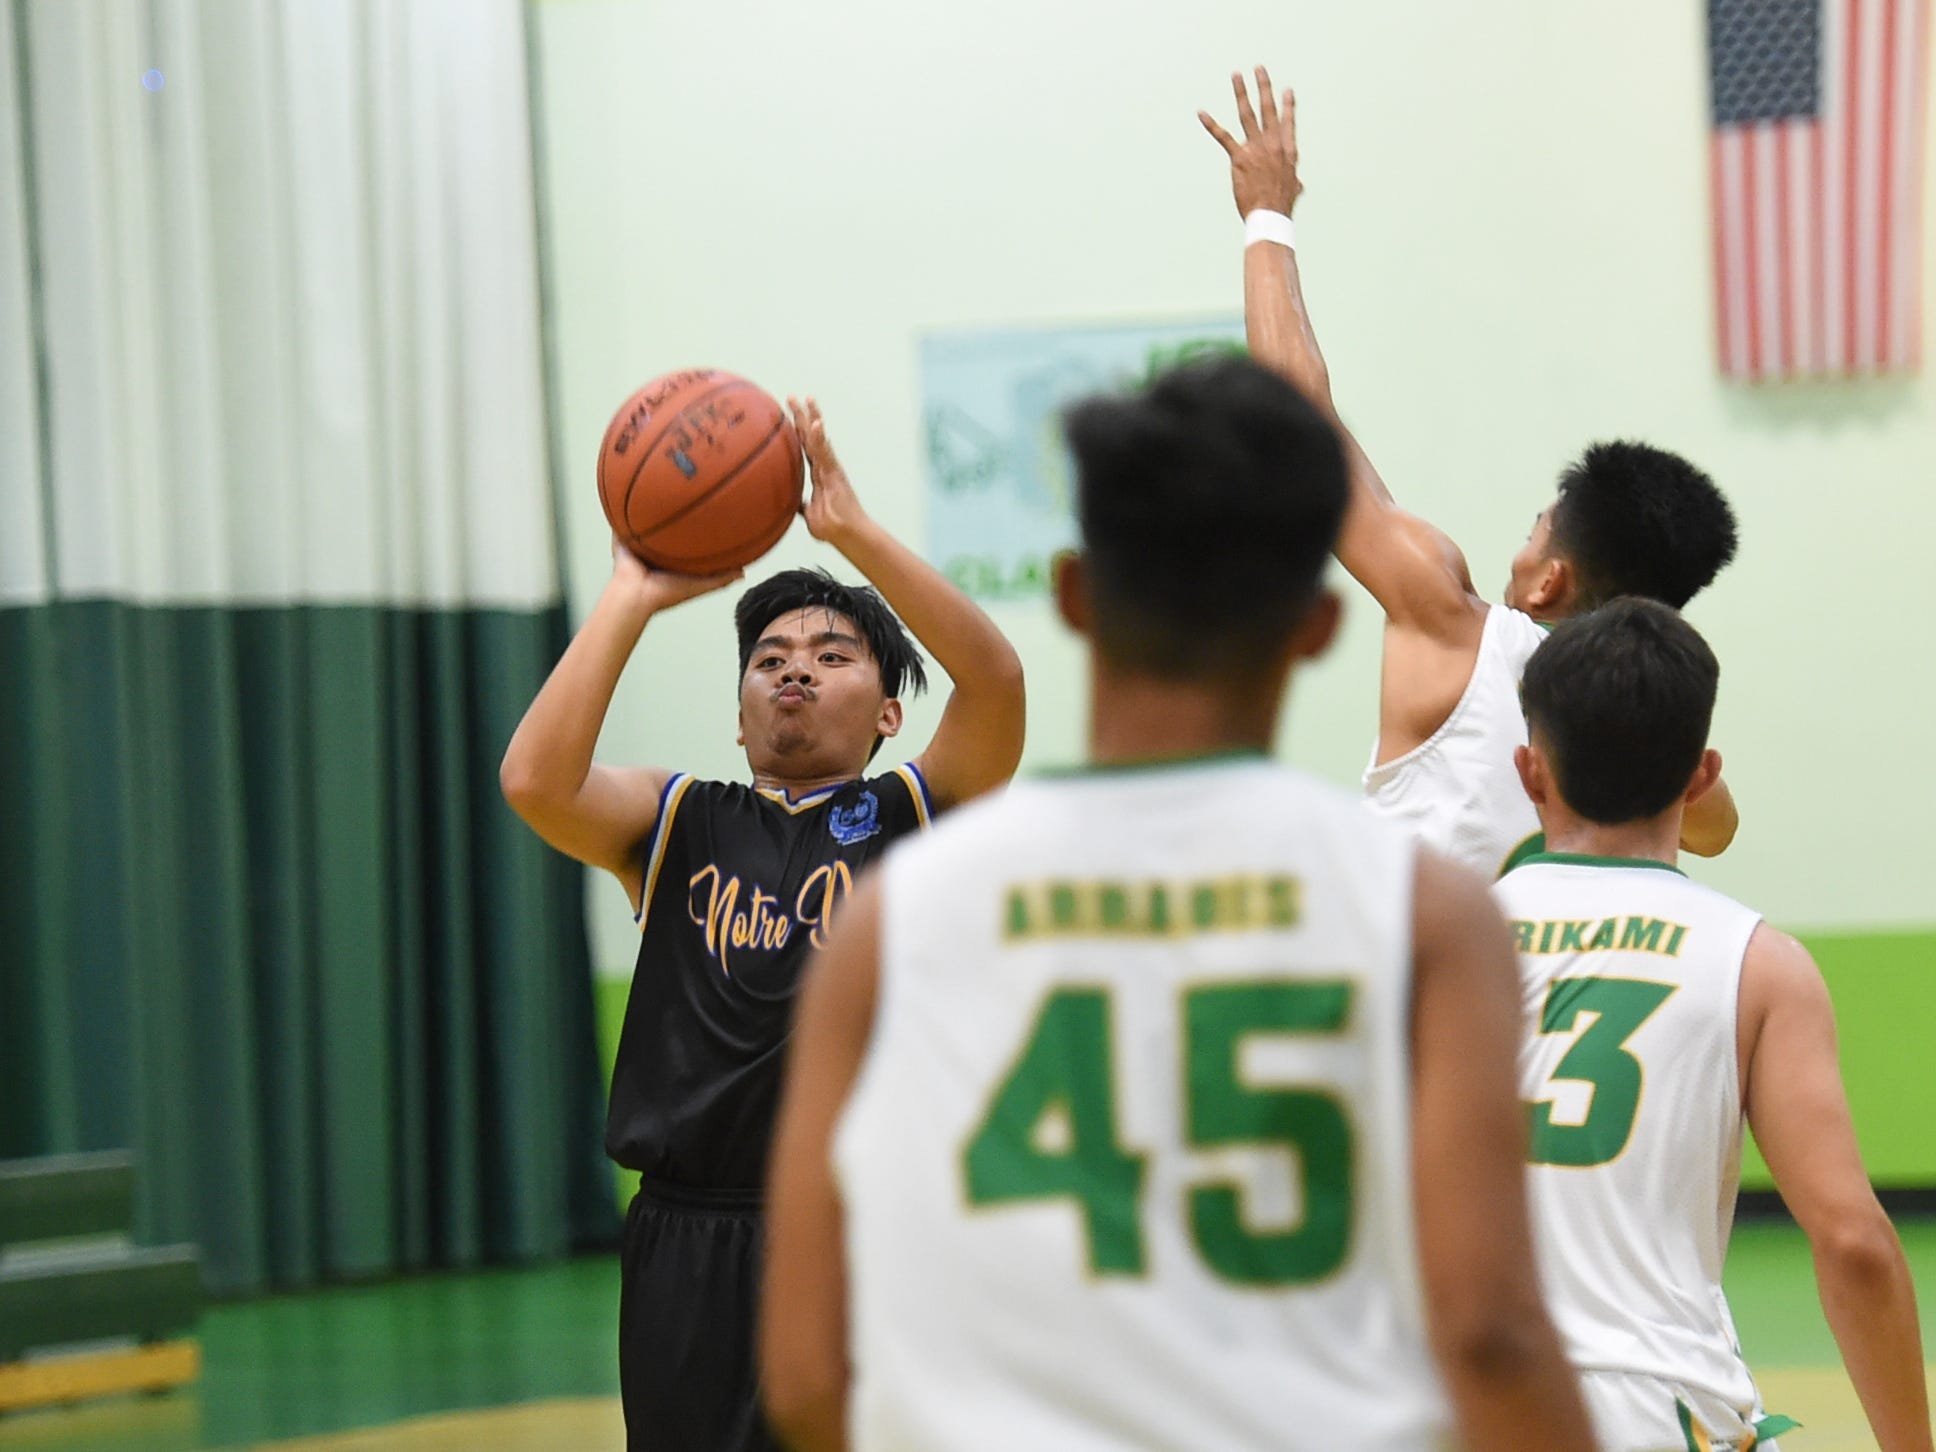 Dean Diras fires from the 3-point line for the Notre Dame Royals during an Independent Interscholastic Athletic Association of Guam Boys' Basketball game at the John F. Kennedy High School Gym, Feb. 2, 2019.